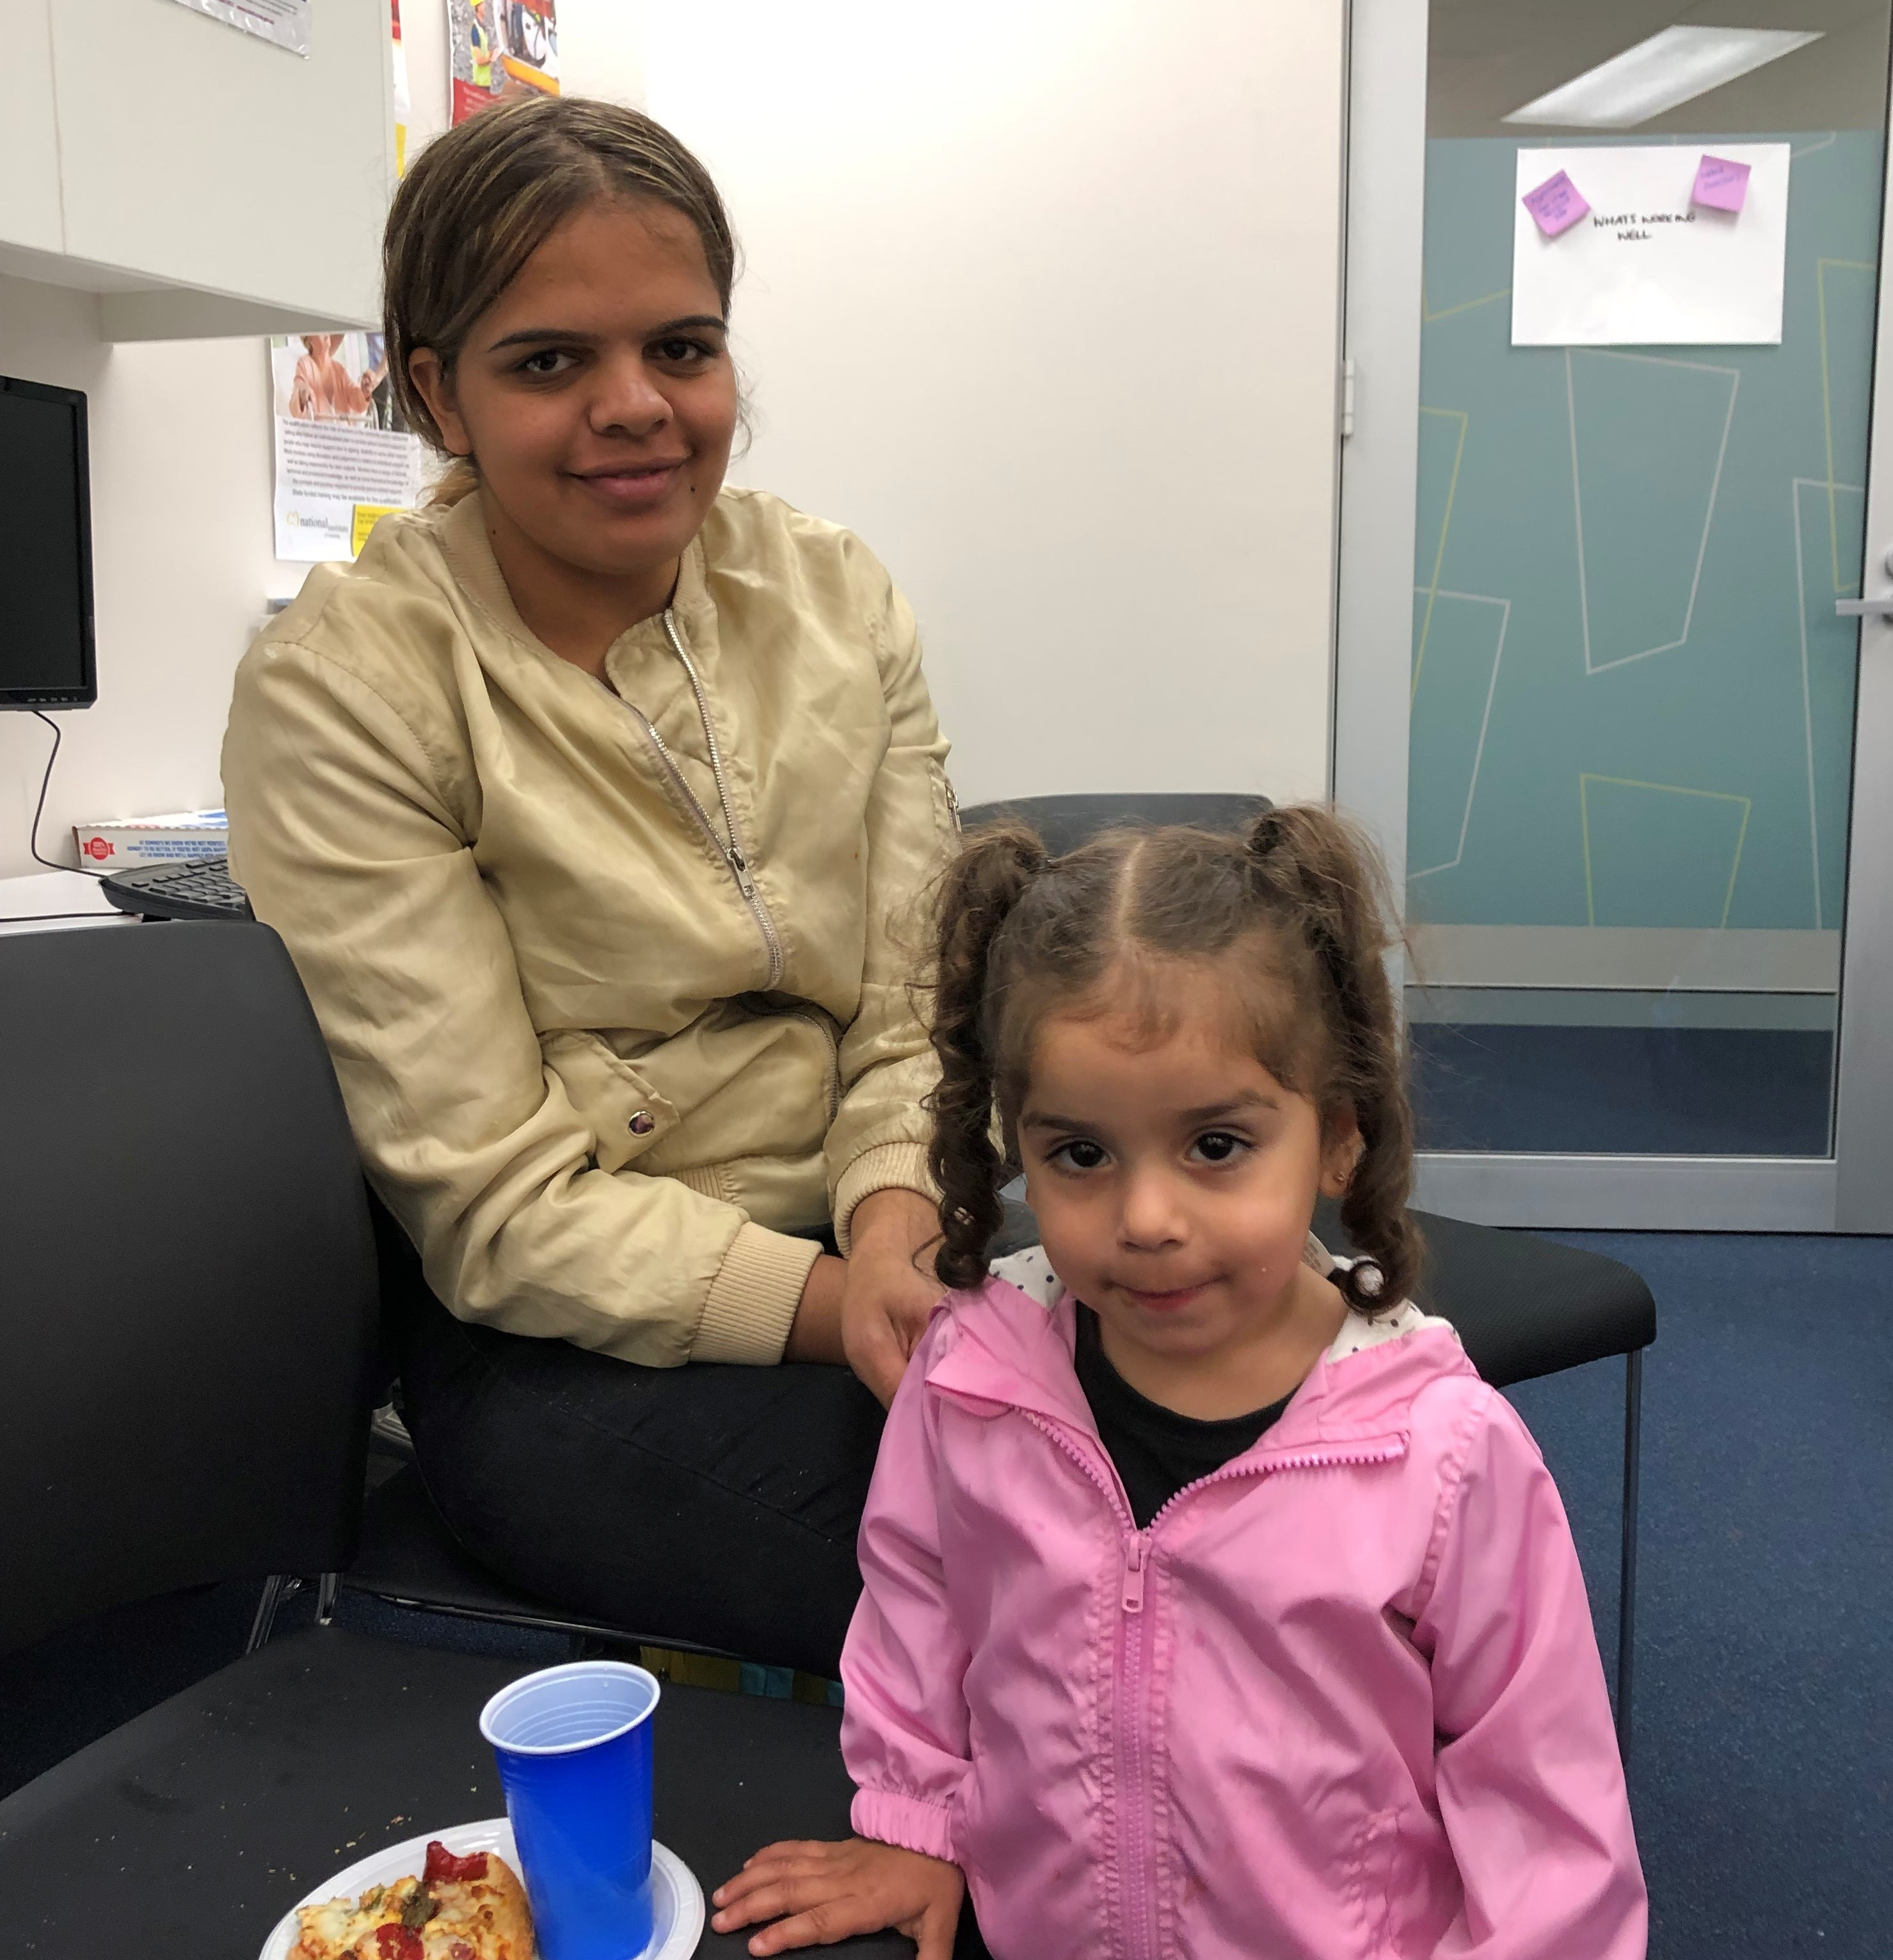 Indigenous Parents Come Together to Share Their Journey To Employment